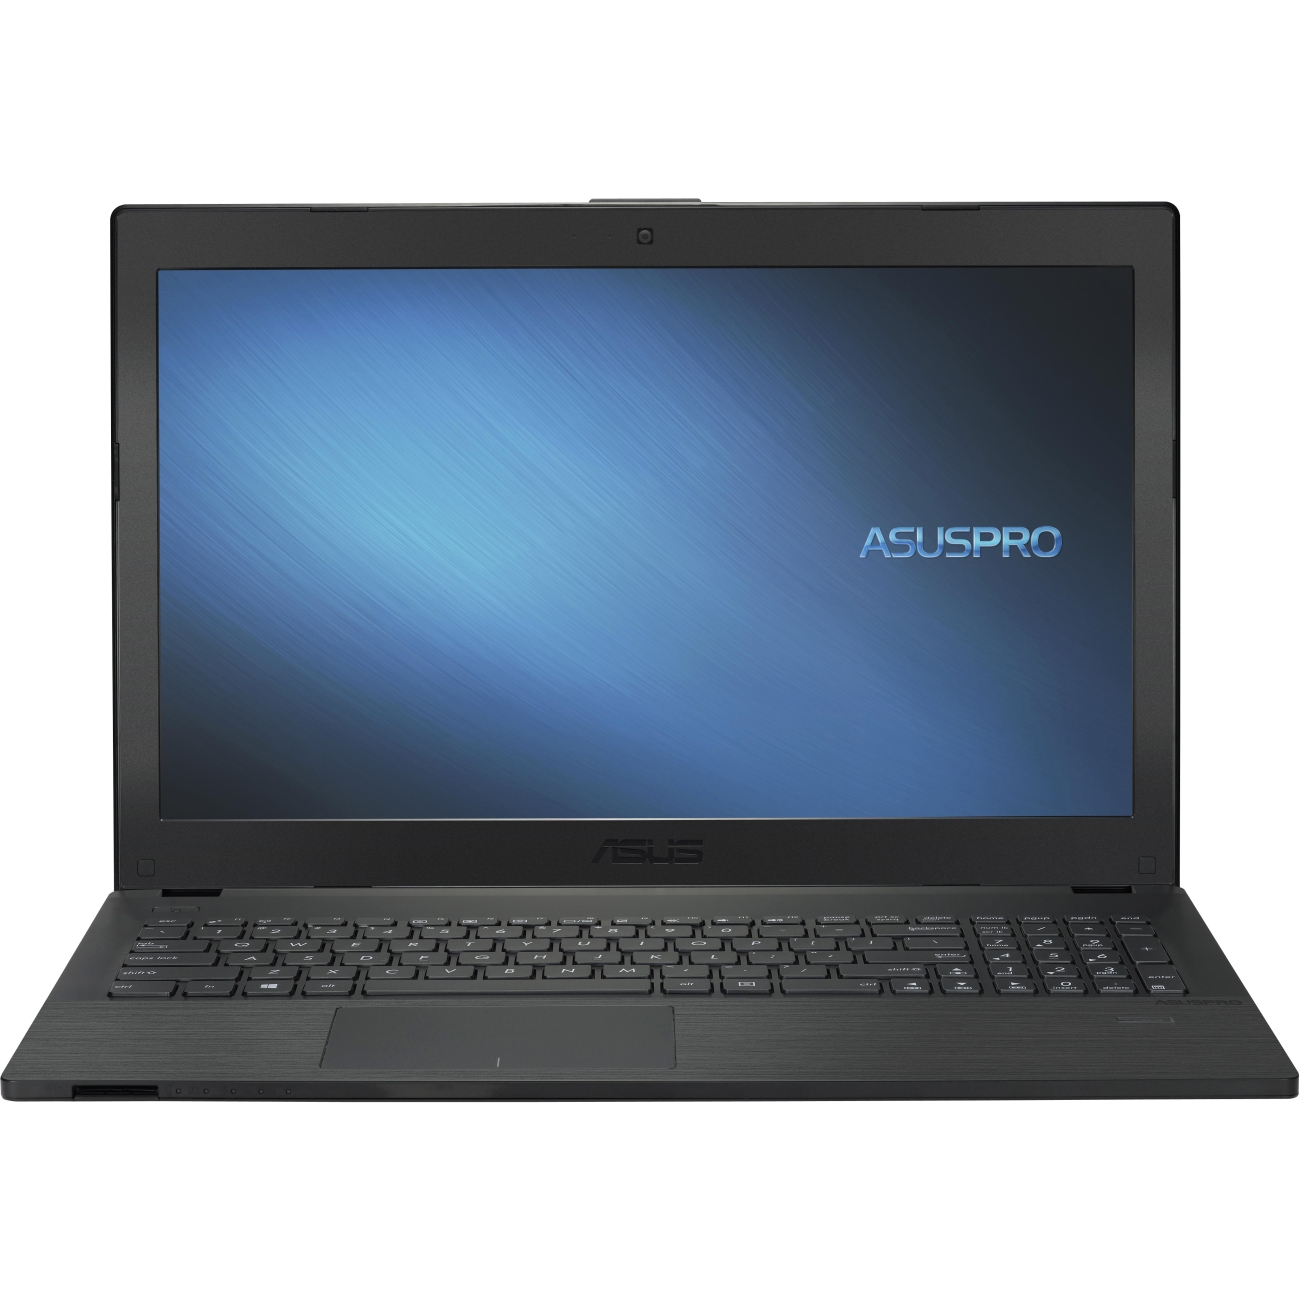 """Asus PRO P Essential P2530UA-XH31 15.6"""" LCD Notebook - In..."""